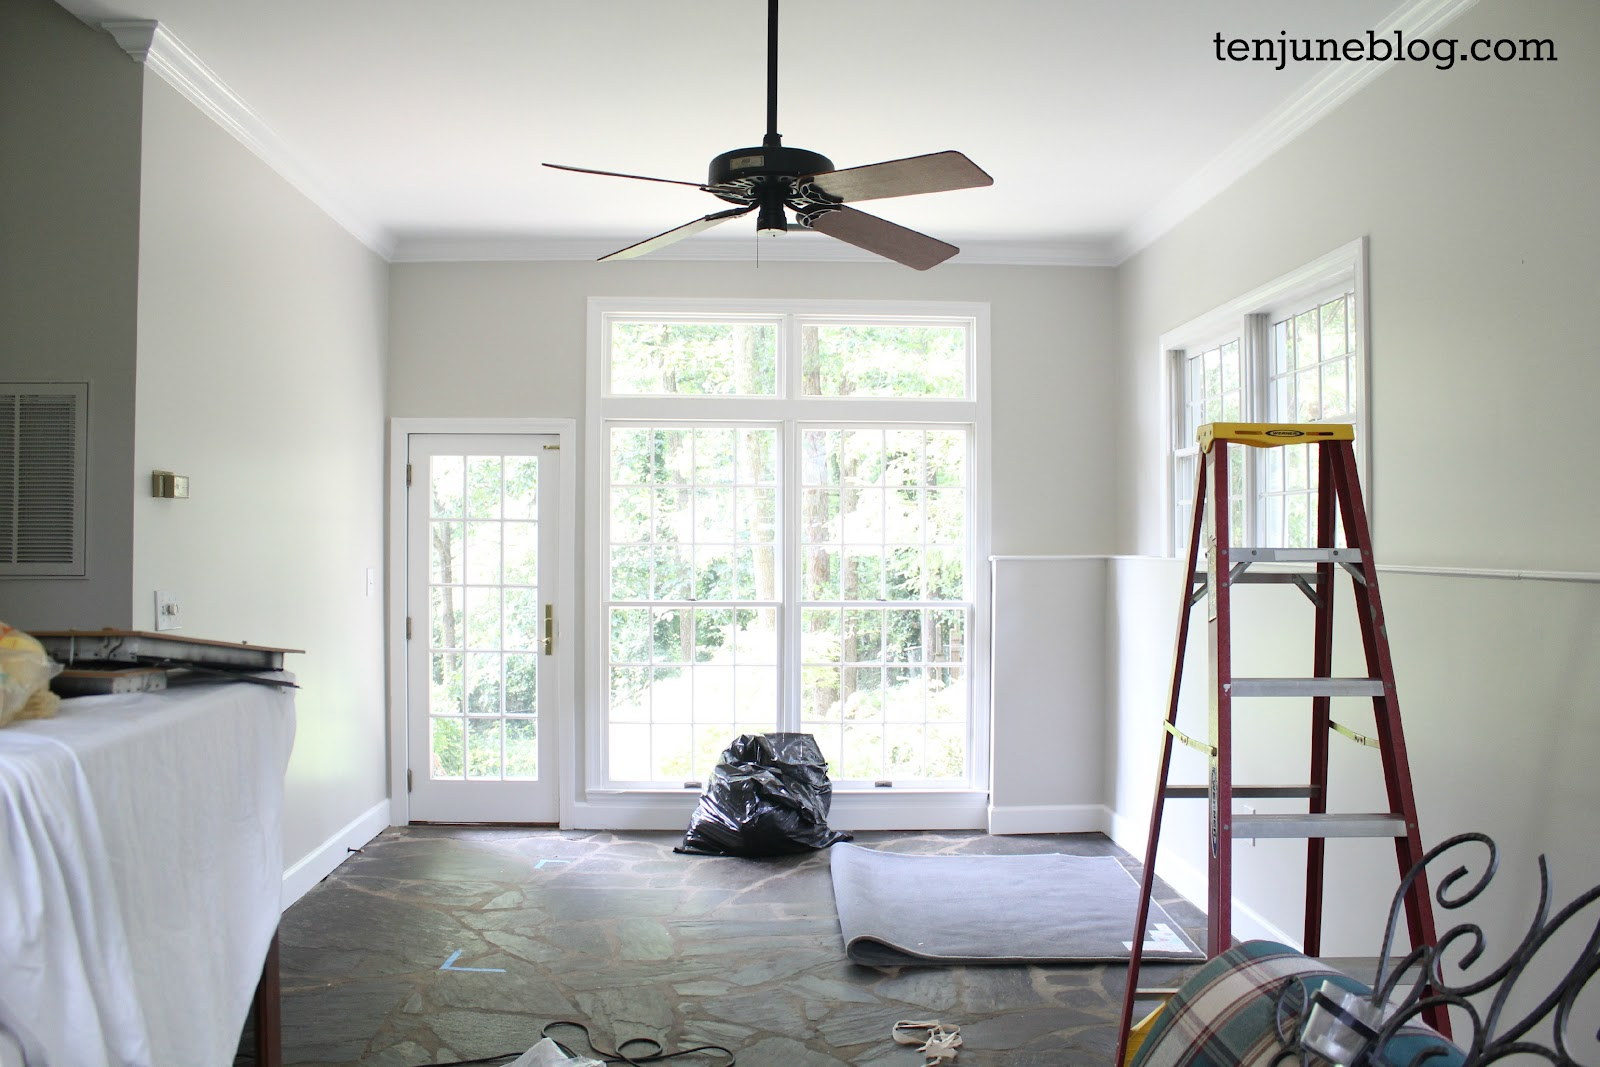 Ten June: Slate Room {Living Room} Makeover: Light, Bright And Freshly  Painted! Part 84